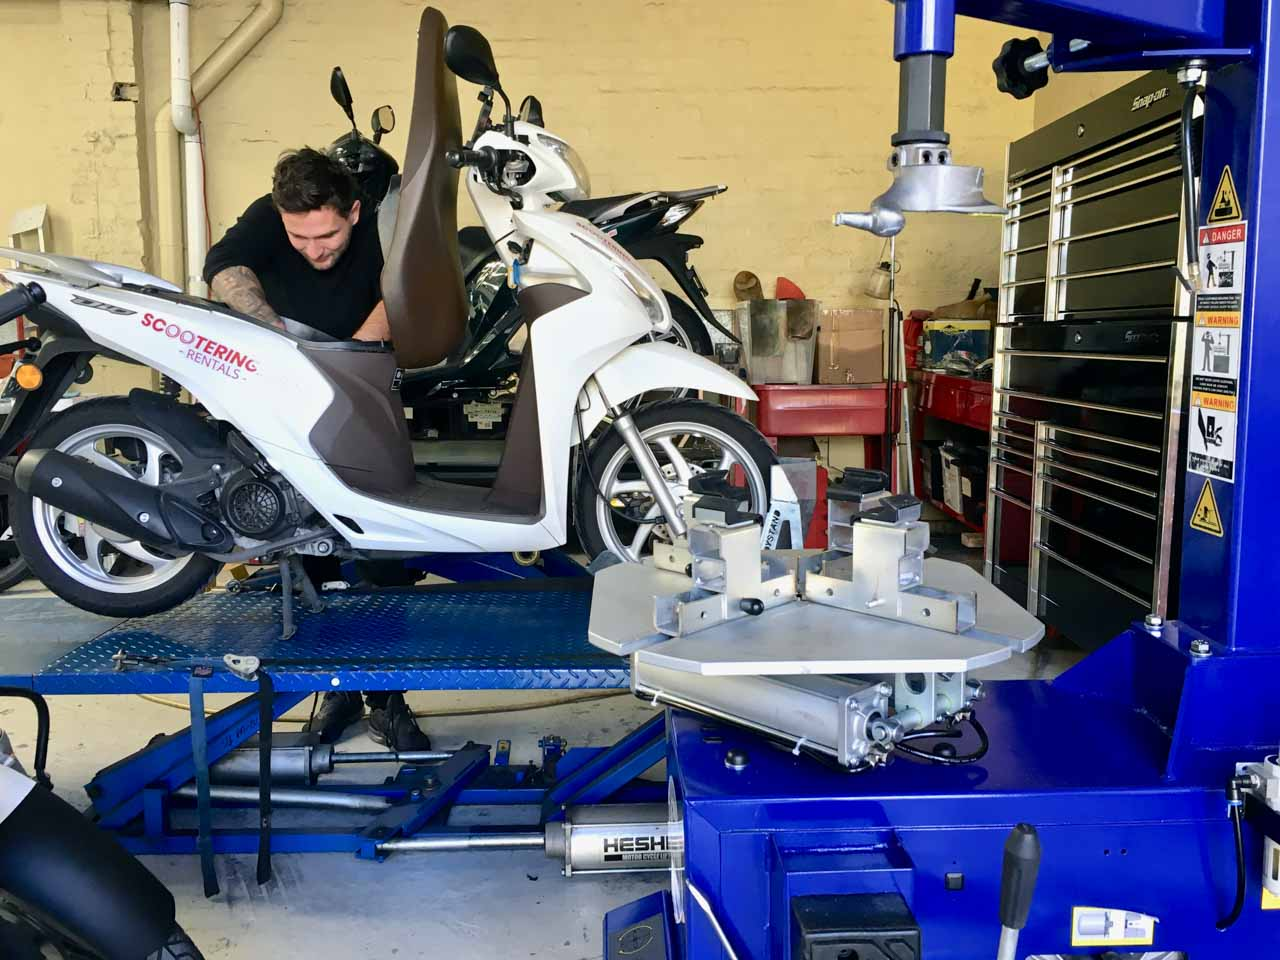 The workshop with bikes getting a service at Scootering who provide scooter and motorcycle rental in Sydney